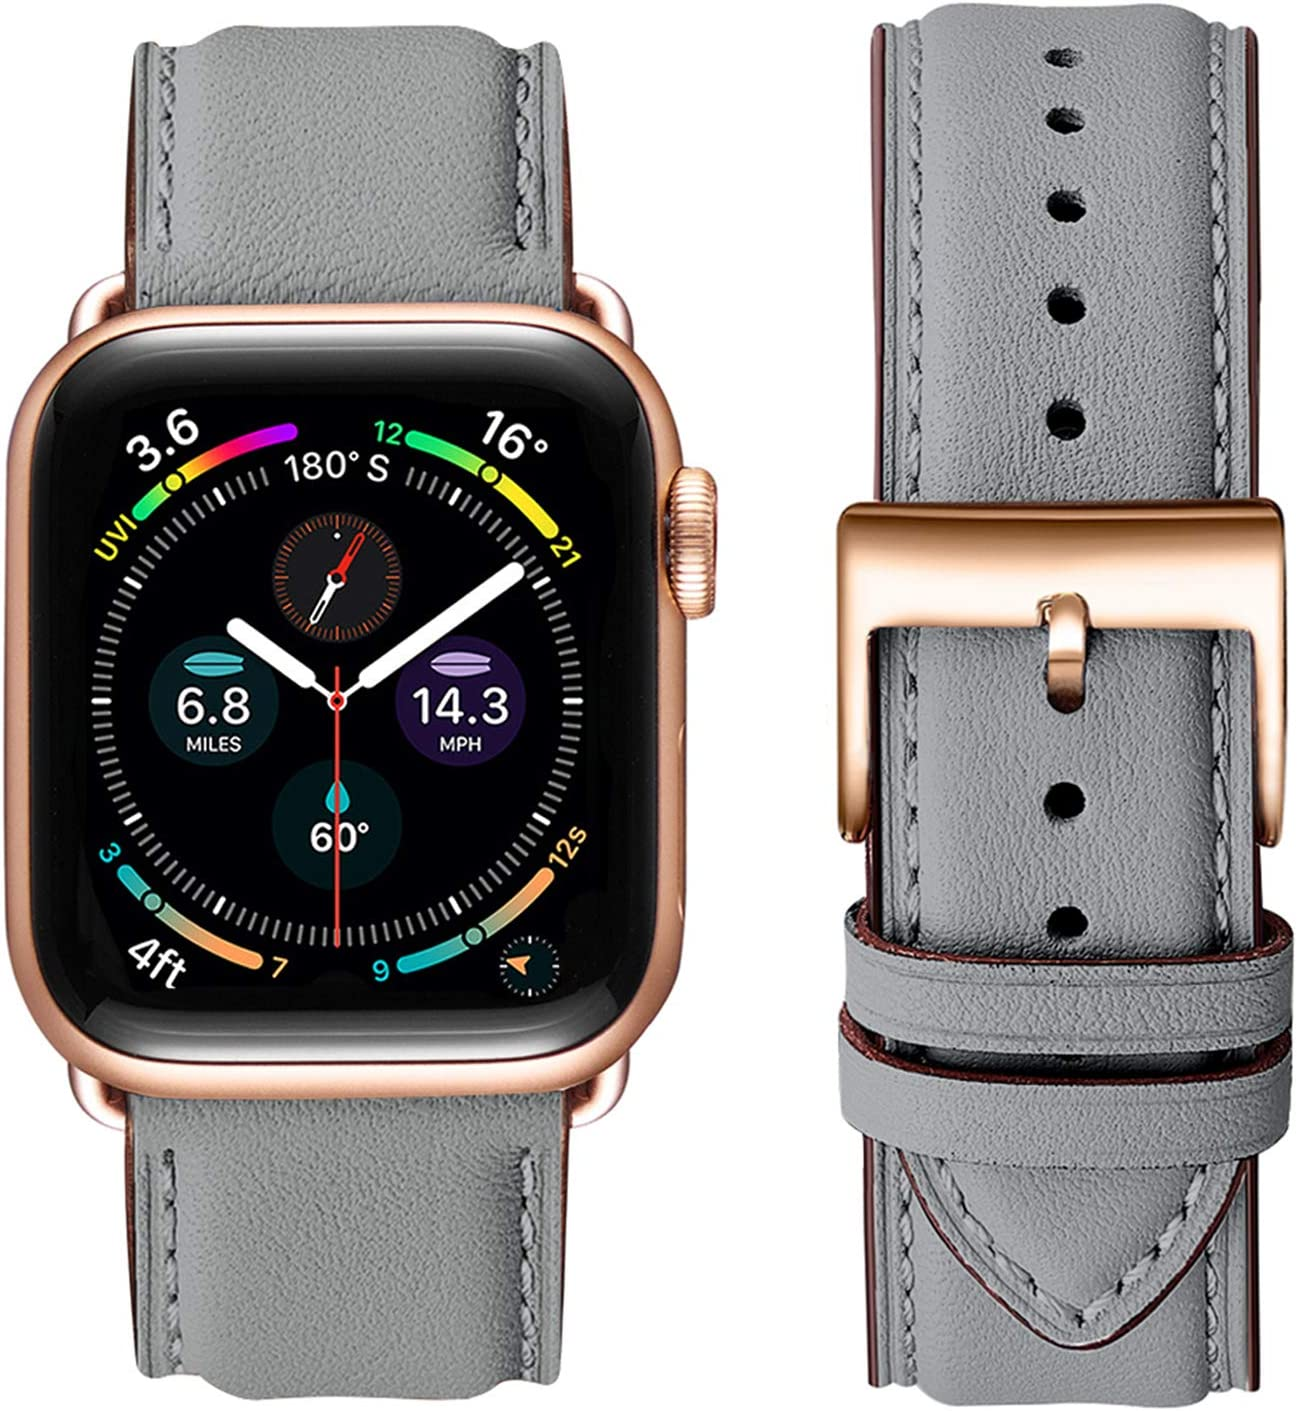 OMIU Square Bands Compatible for Apple Watch 38mm 40mm 42mm 44mm, Genuine Leather Replacement Band Compatible with Apple Watch Series 6/5/4/3/2/1, iWatch SE (Gray/Rose Gold Connector, 38mm 40mm)